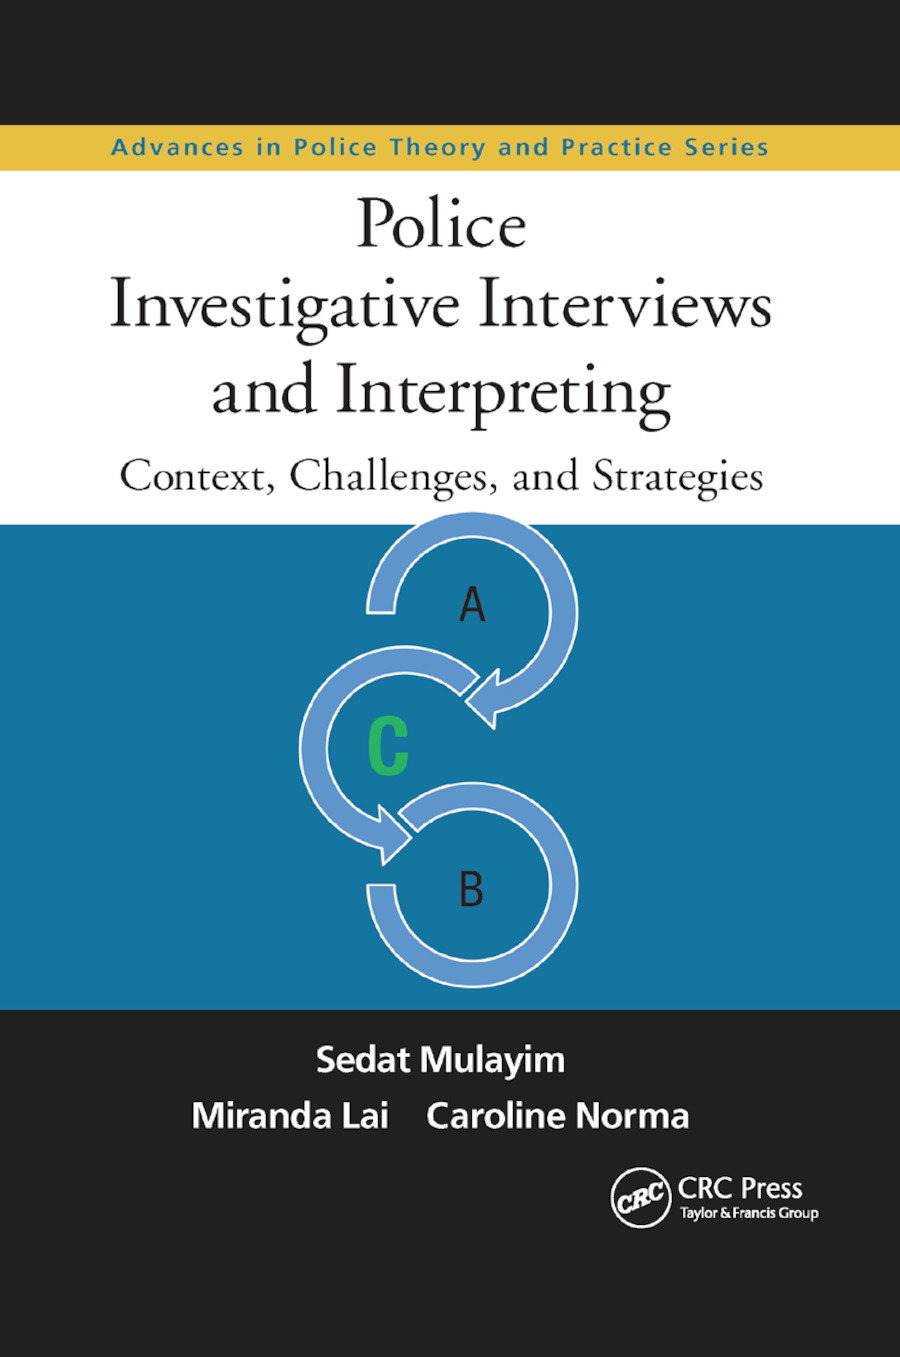 Police Investigative Interviews and Interpreting: Context, Challenges, and Strategies book cover